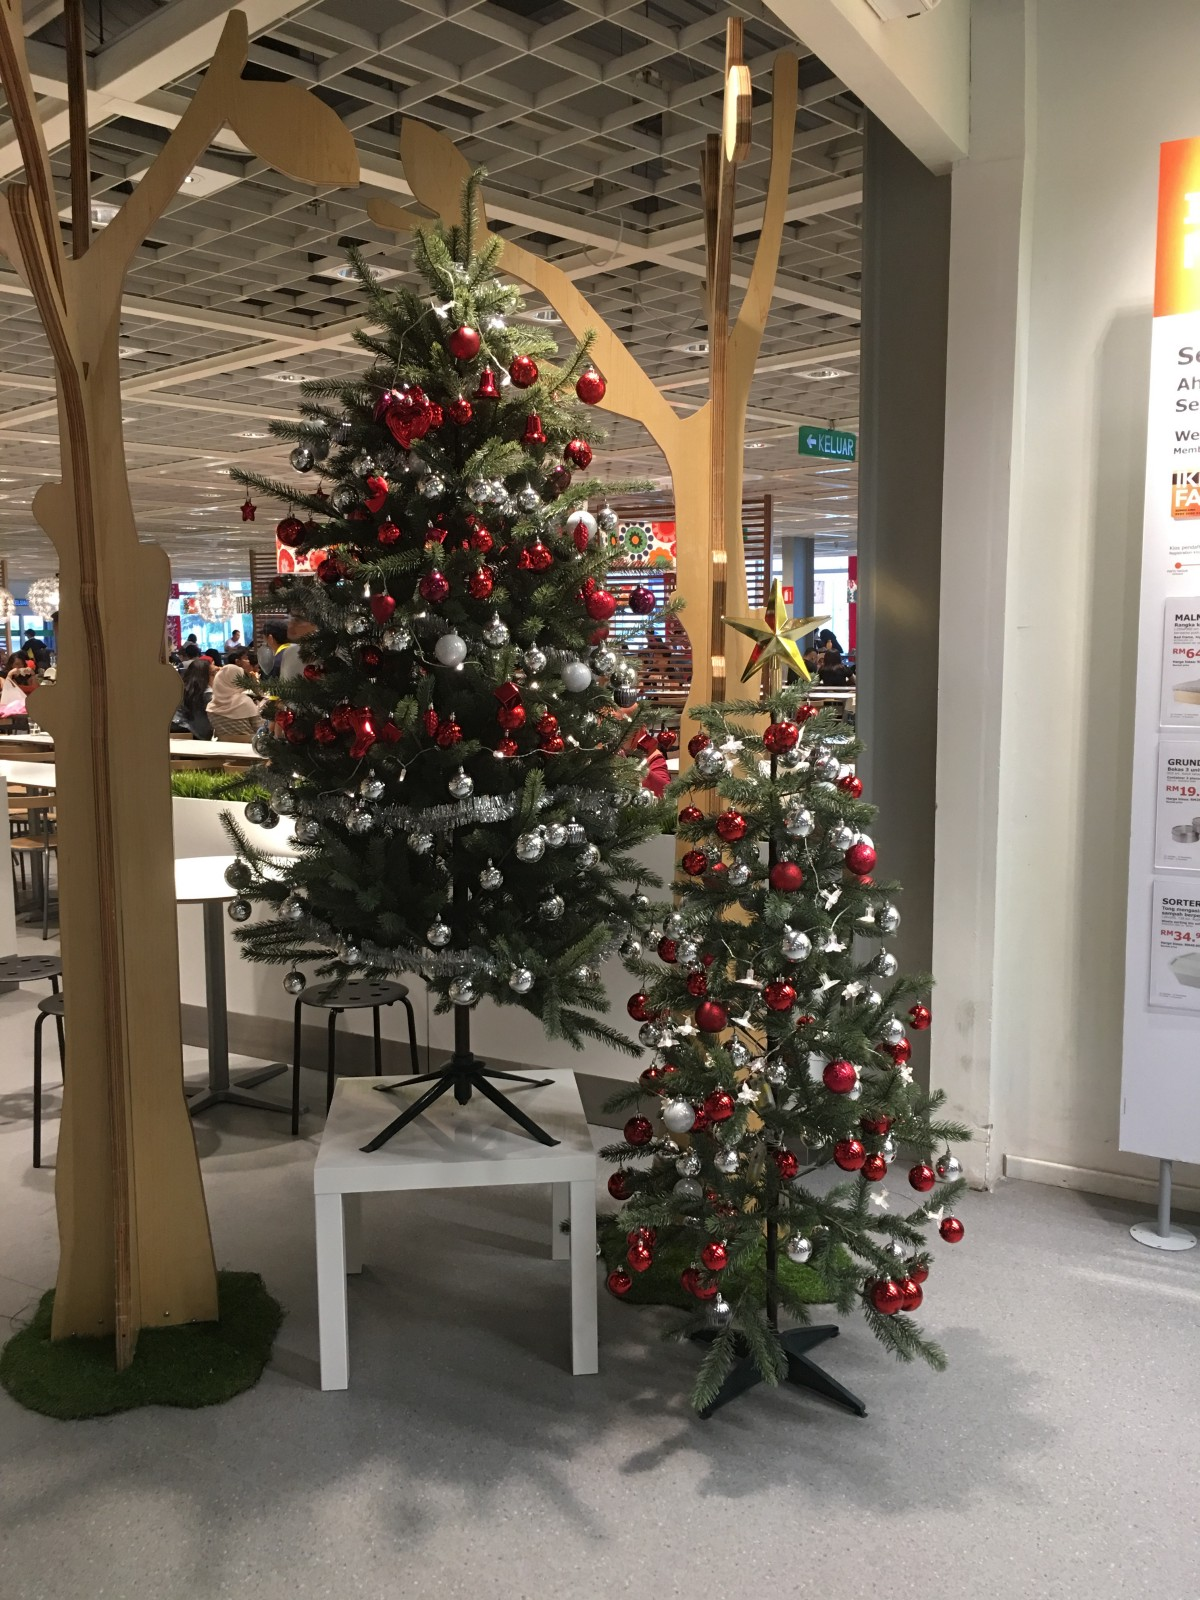 malaysia christmas decorations review 2016 ikea mutiara damansara - Christmas Decorations 2016